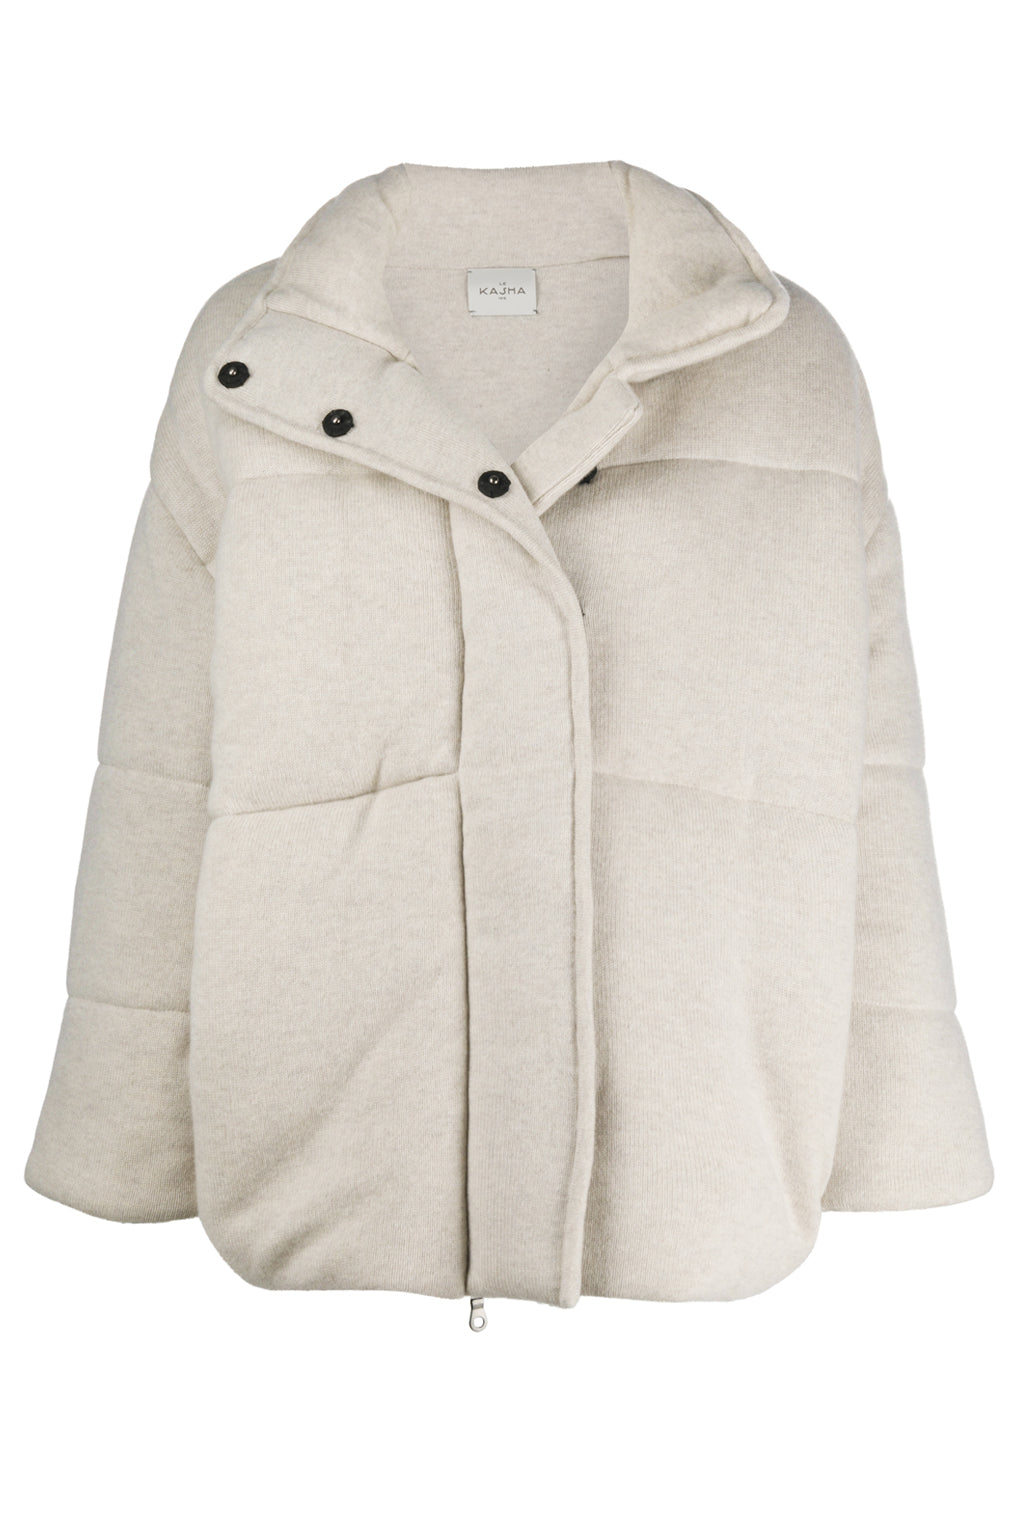 DILLON cashmere puffy jacket